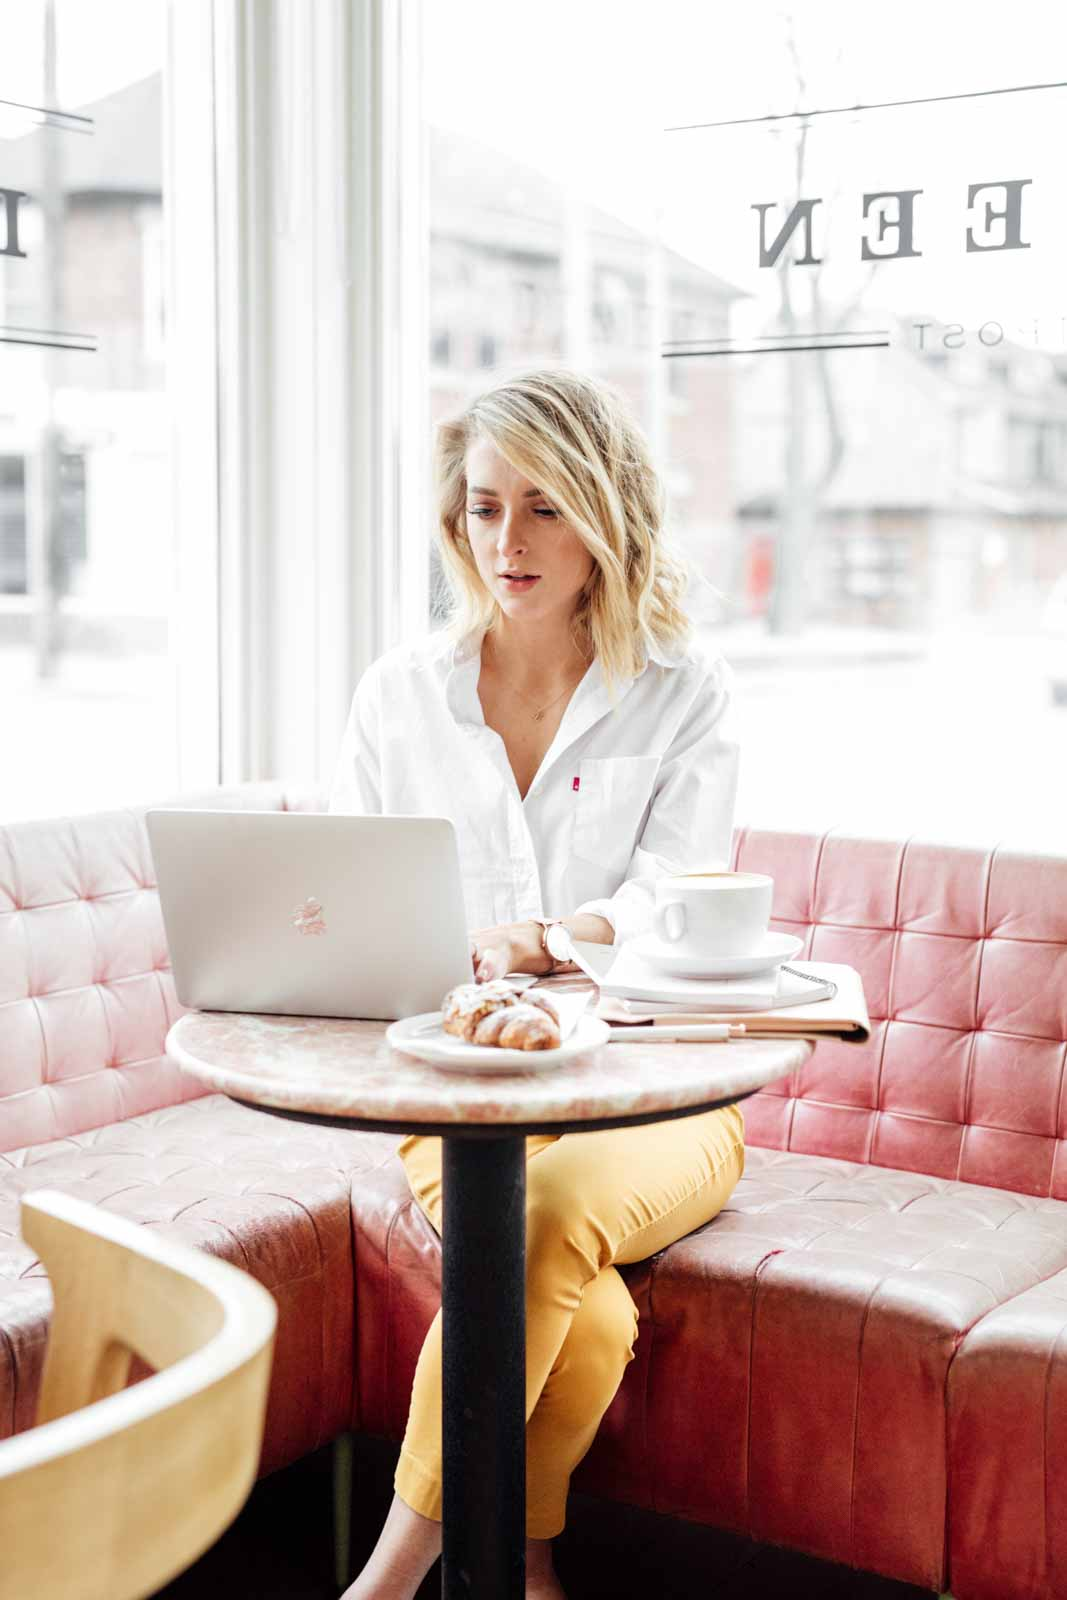 5 Steps You Can Take To Monetize Your Brand Right Now, as told by a blogger, influencer, and small-business owner! Why not make money if your brand if you can? Here's how!